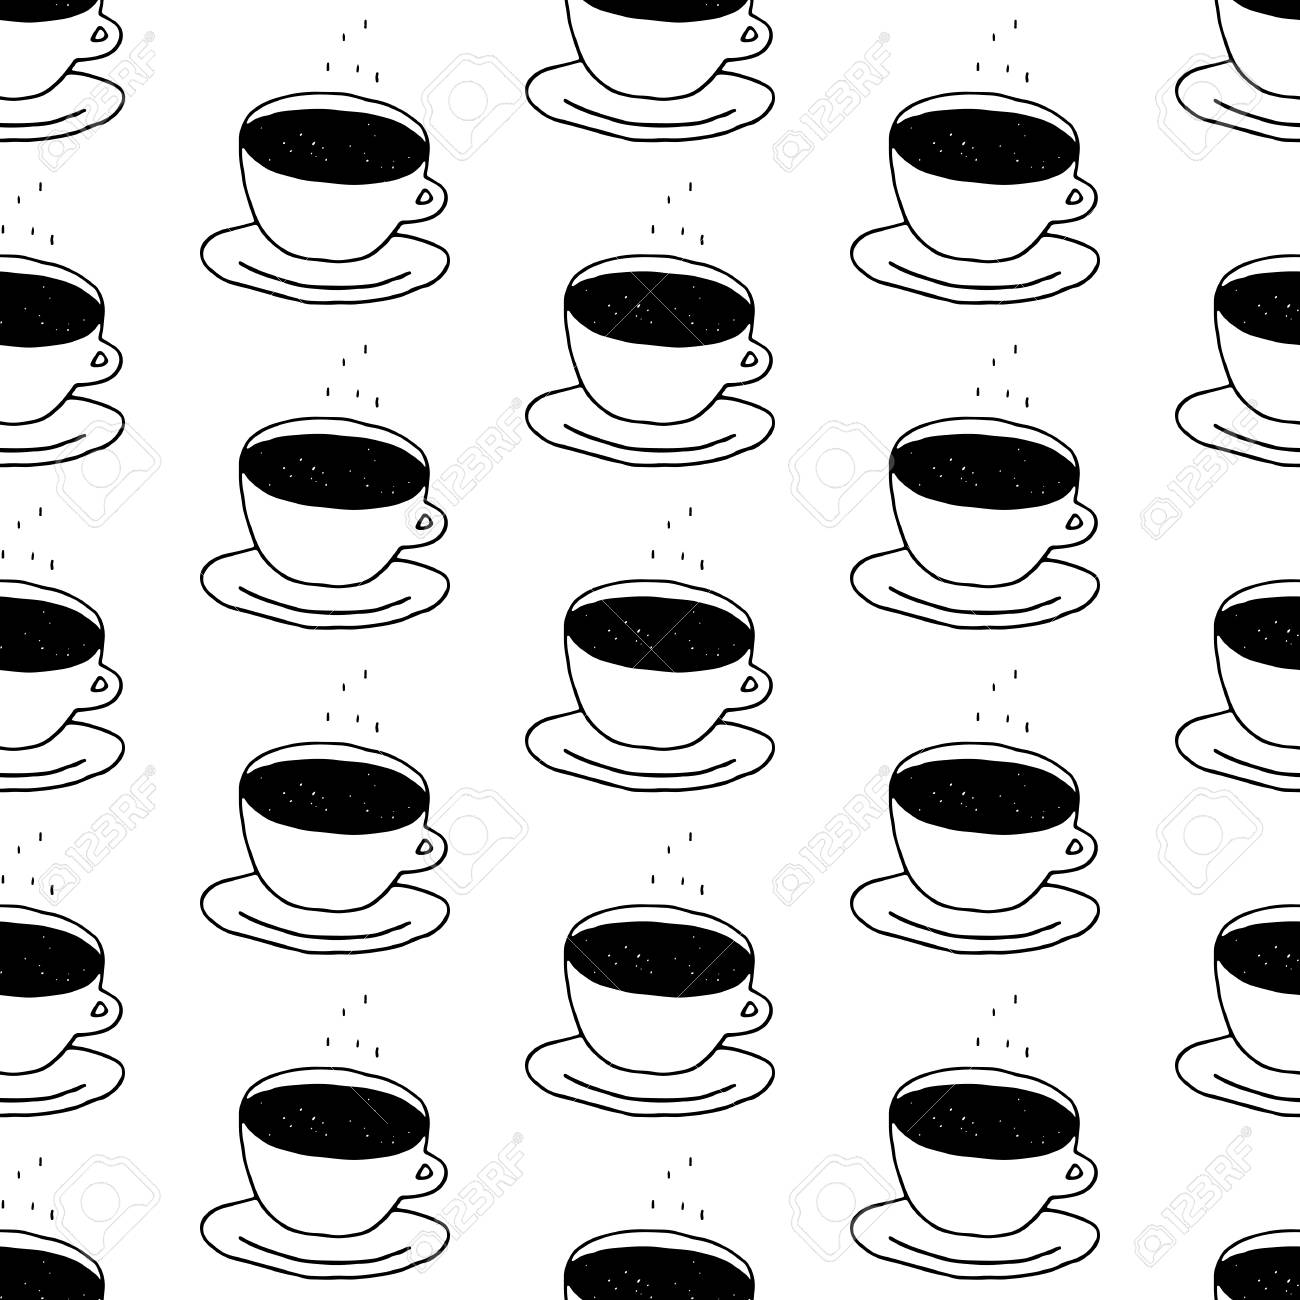 Impressive Hand Drawn Coffee Black Hand Drawn Coffee Black Coffee Cup Pattern Coffeecup Pattern Coffee Cup Pattern Coffee Cups Coffee Cup Clipart furniture Cute Coffee Cups